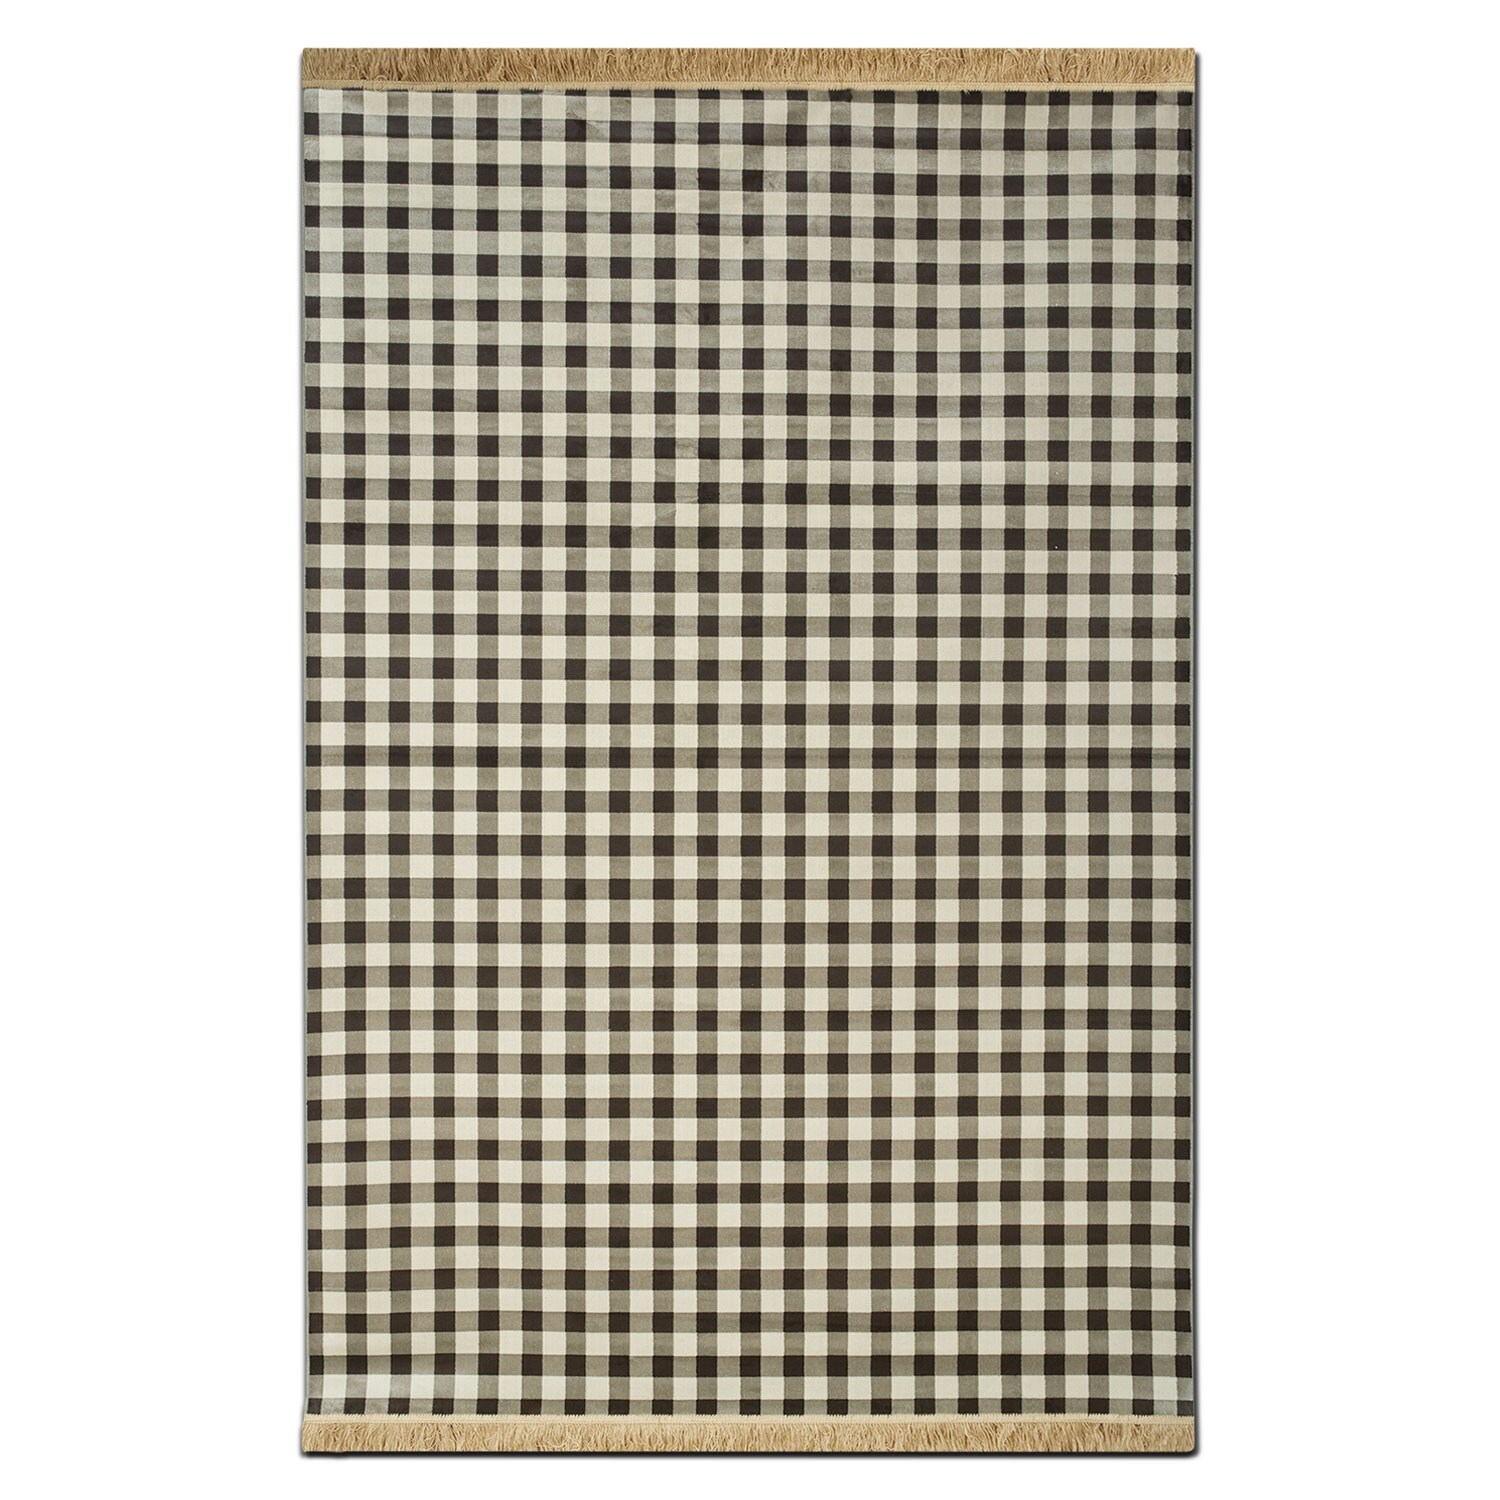 Rugs - Sonoma Area Rug - Black and White